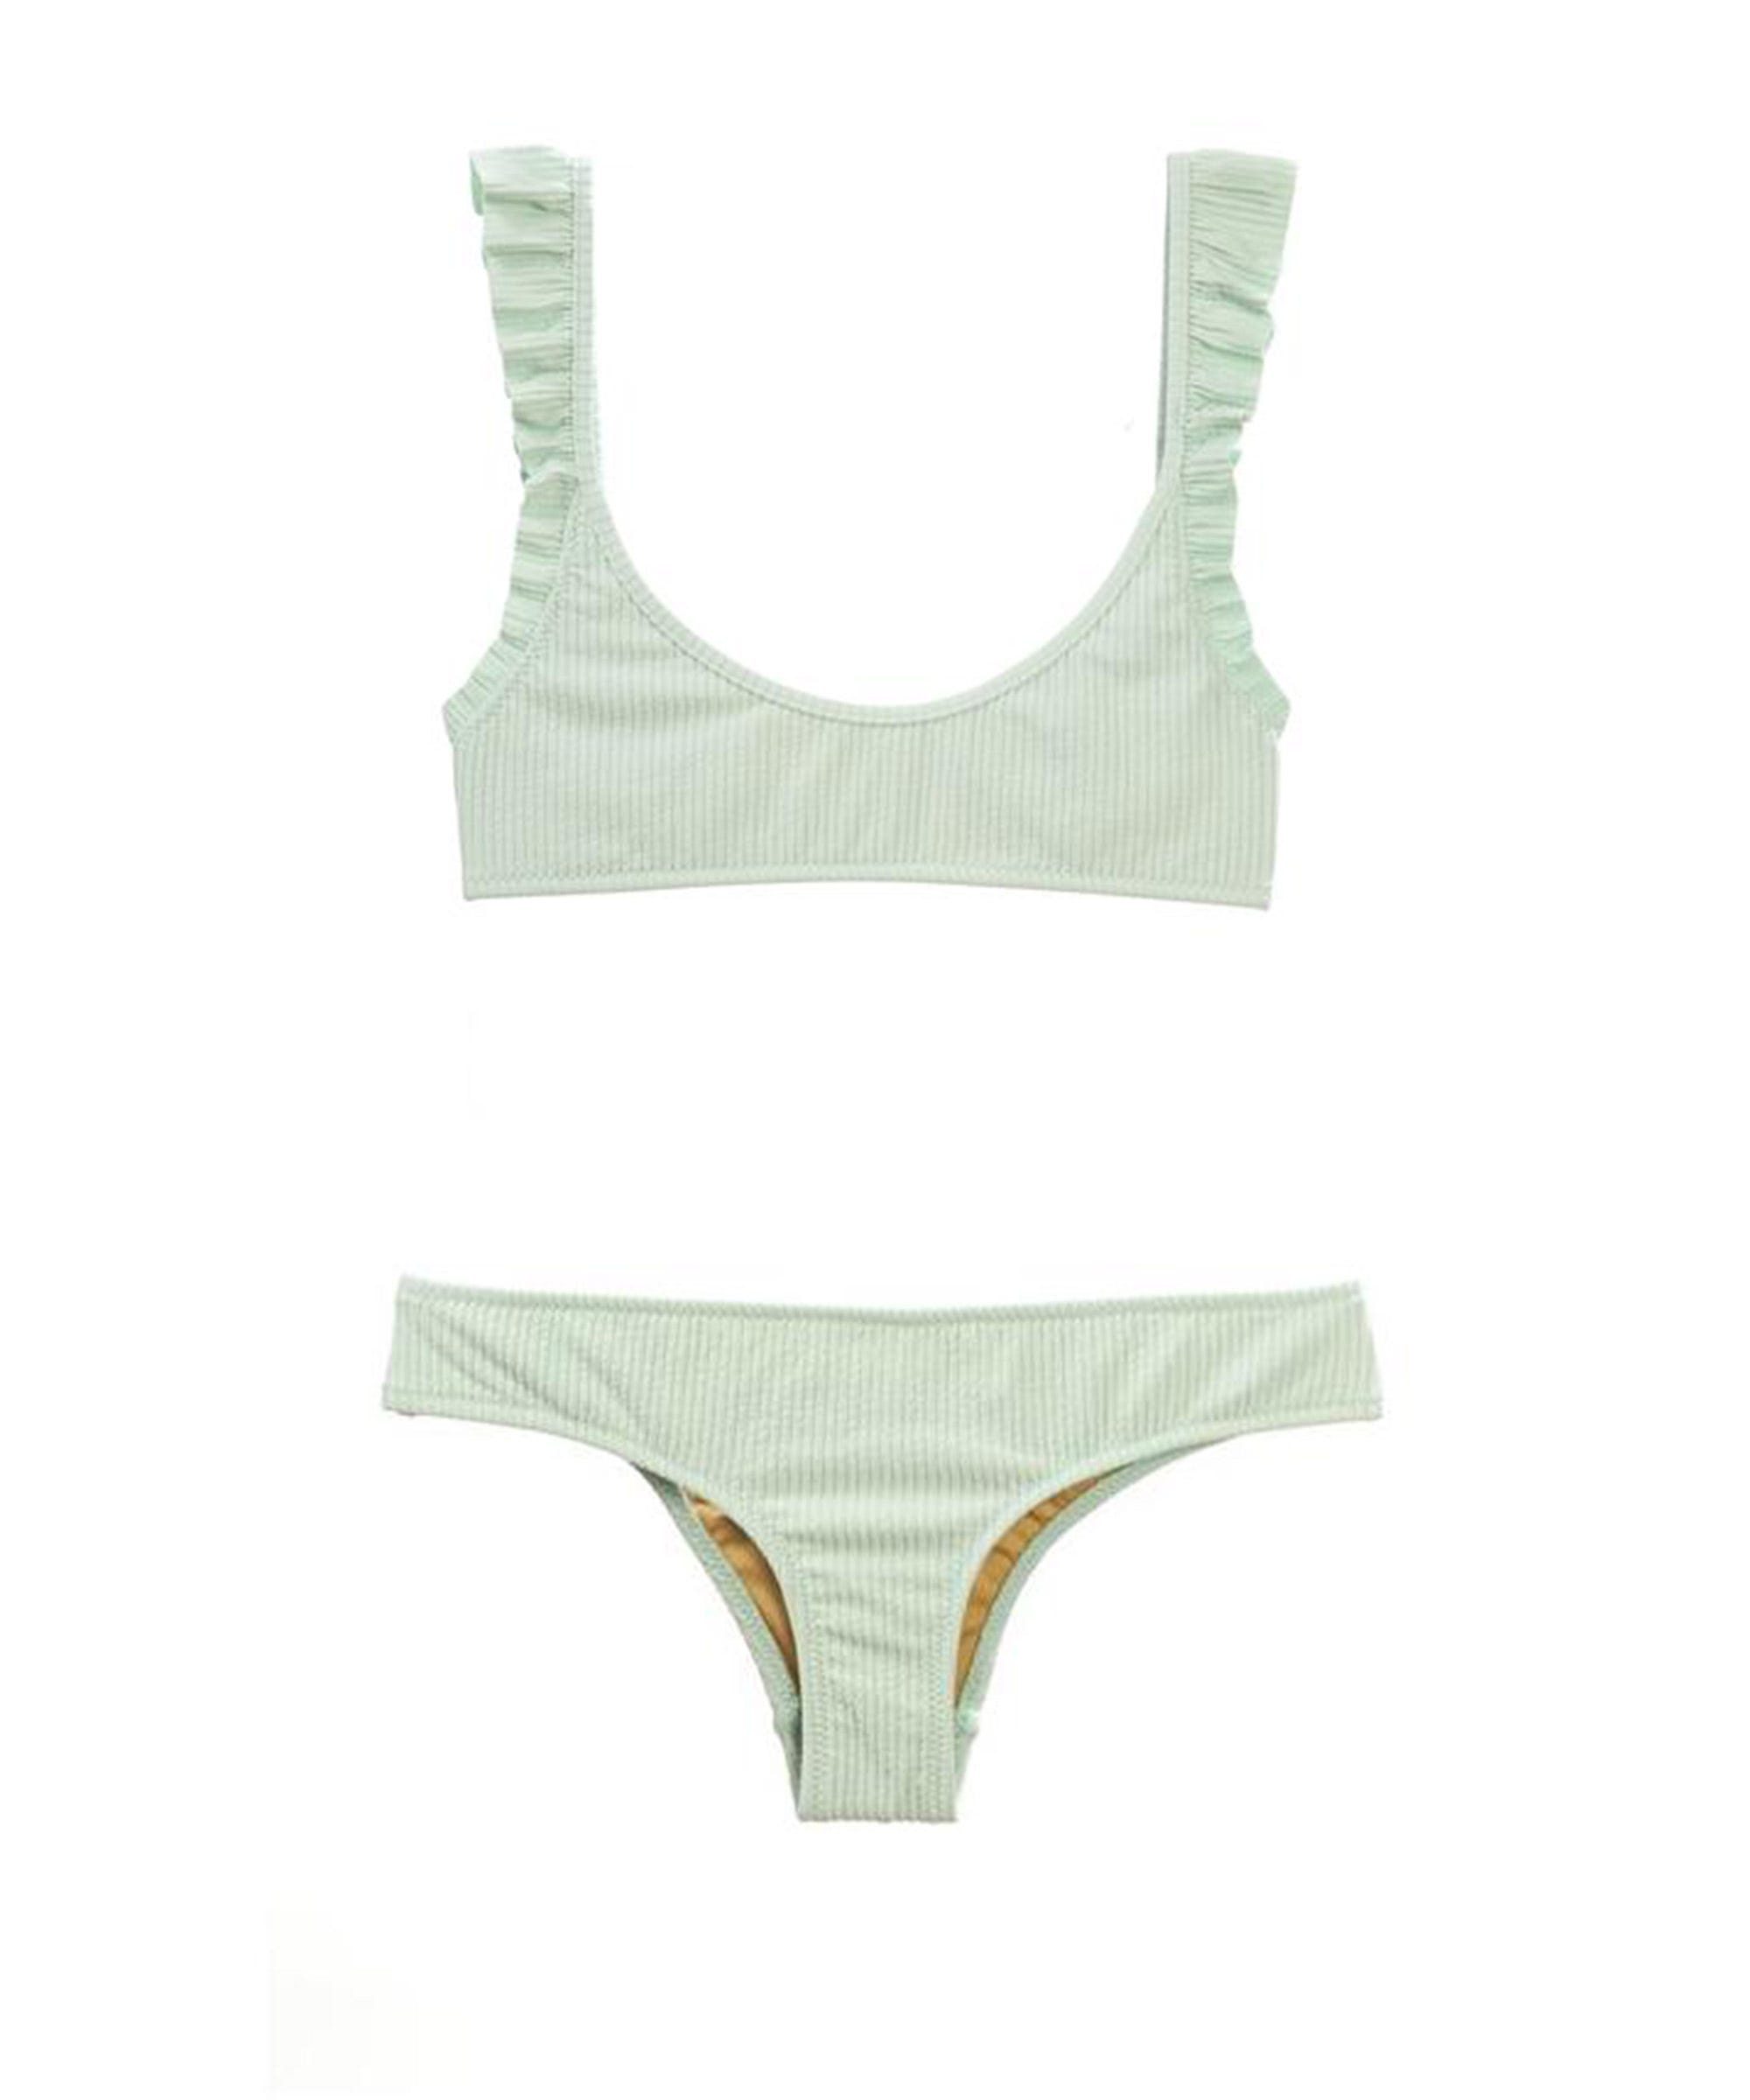 d0150830ea Best Swimsuits For Small Busts - Bikinis, One-Pieces